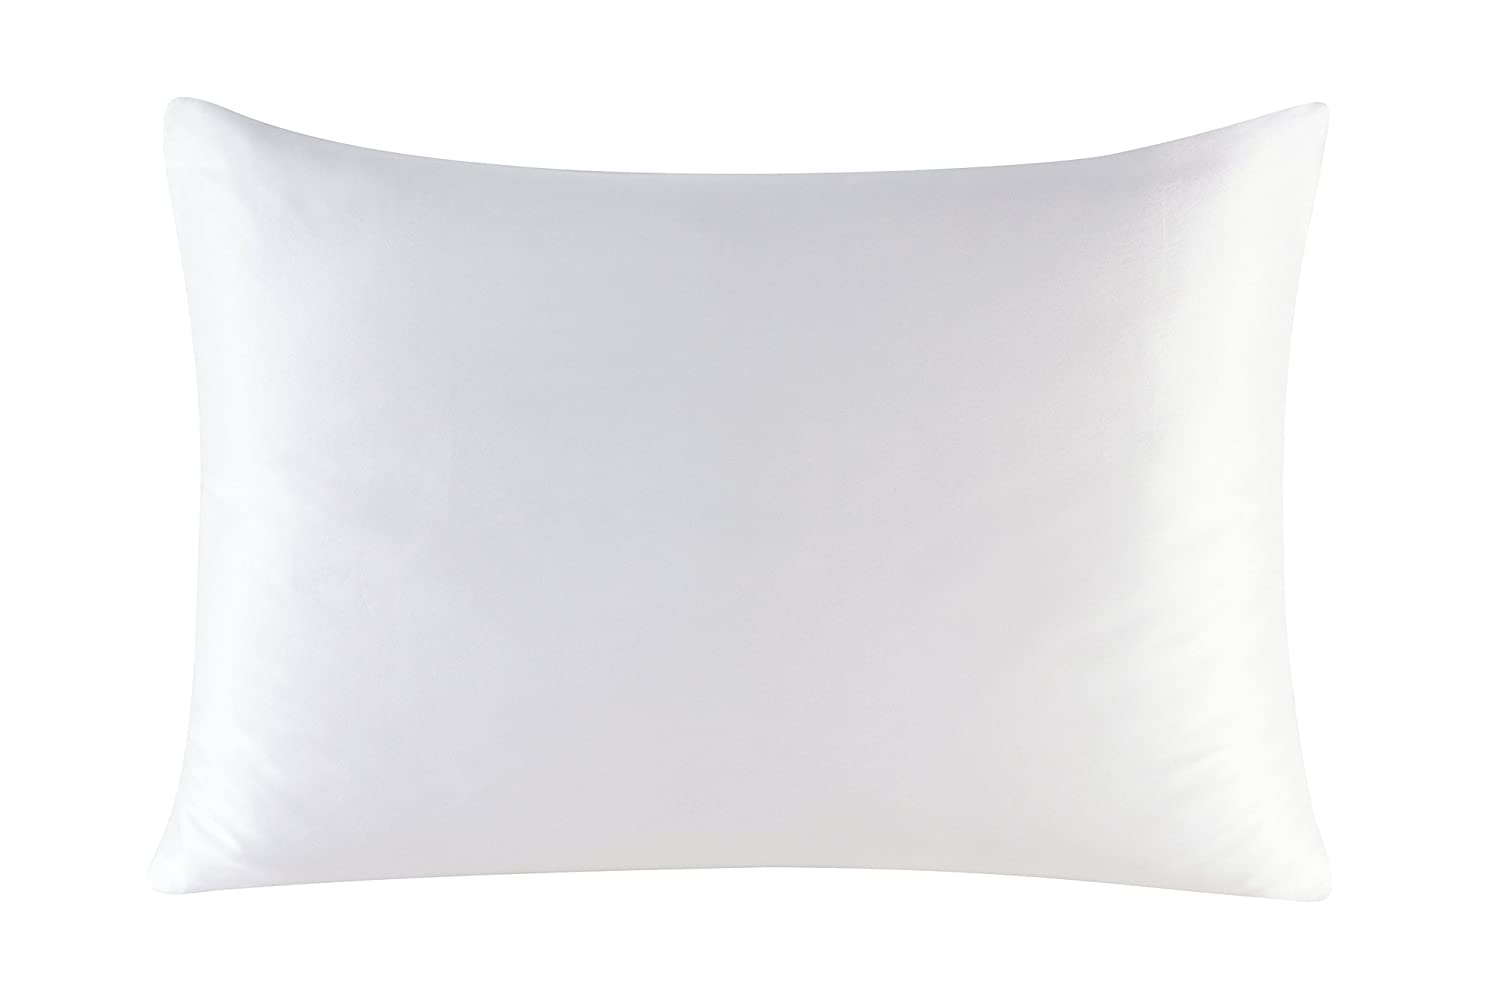 (Standard, White) Townssilk Both Side 100% 16mm Silk Pillowcase Standard Size Pillow Case Cover with Hidden Zipper White B01HKRAMFI 標準|ホワイト ホワイト 標準